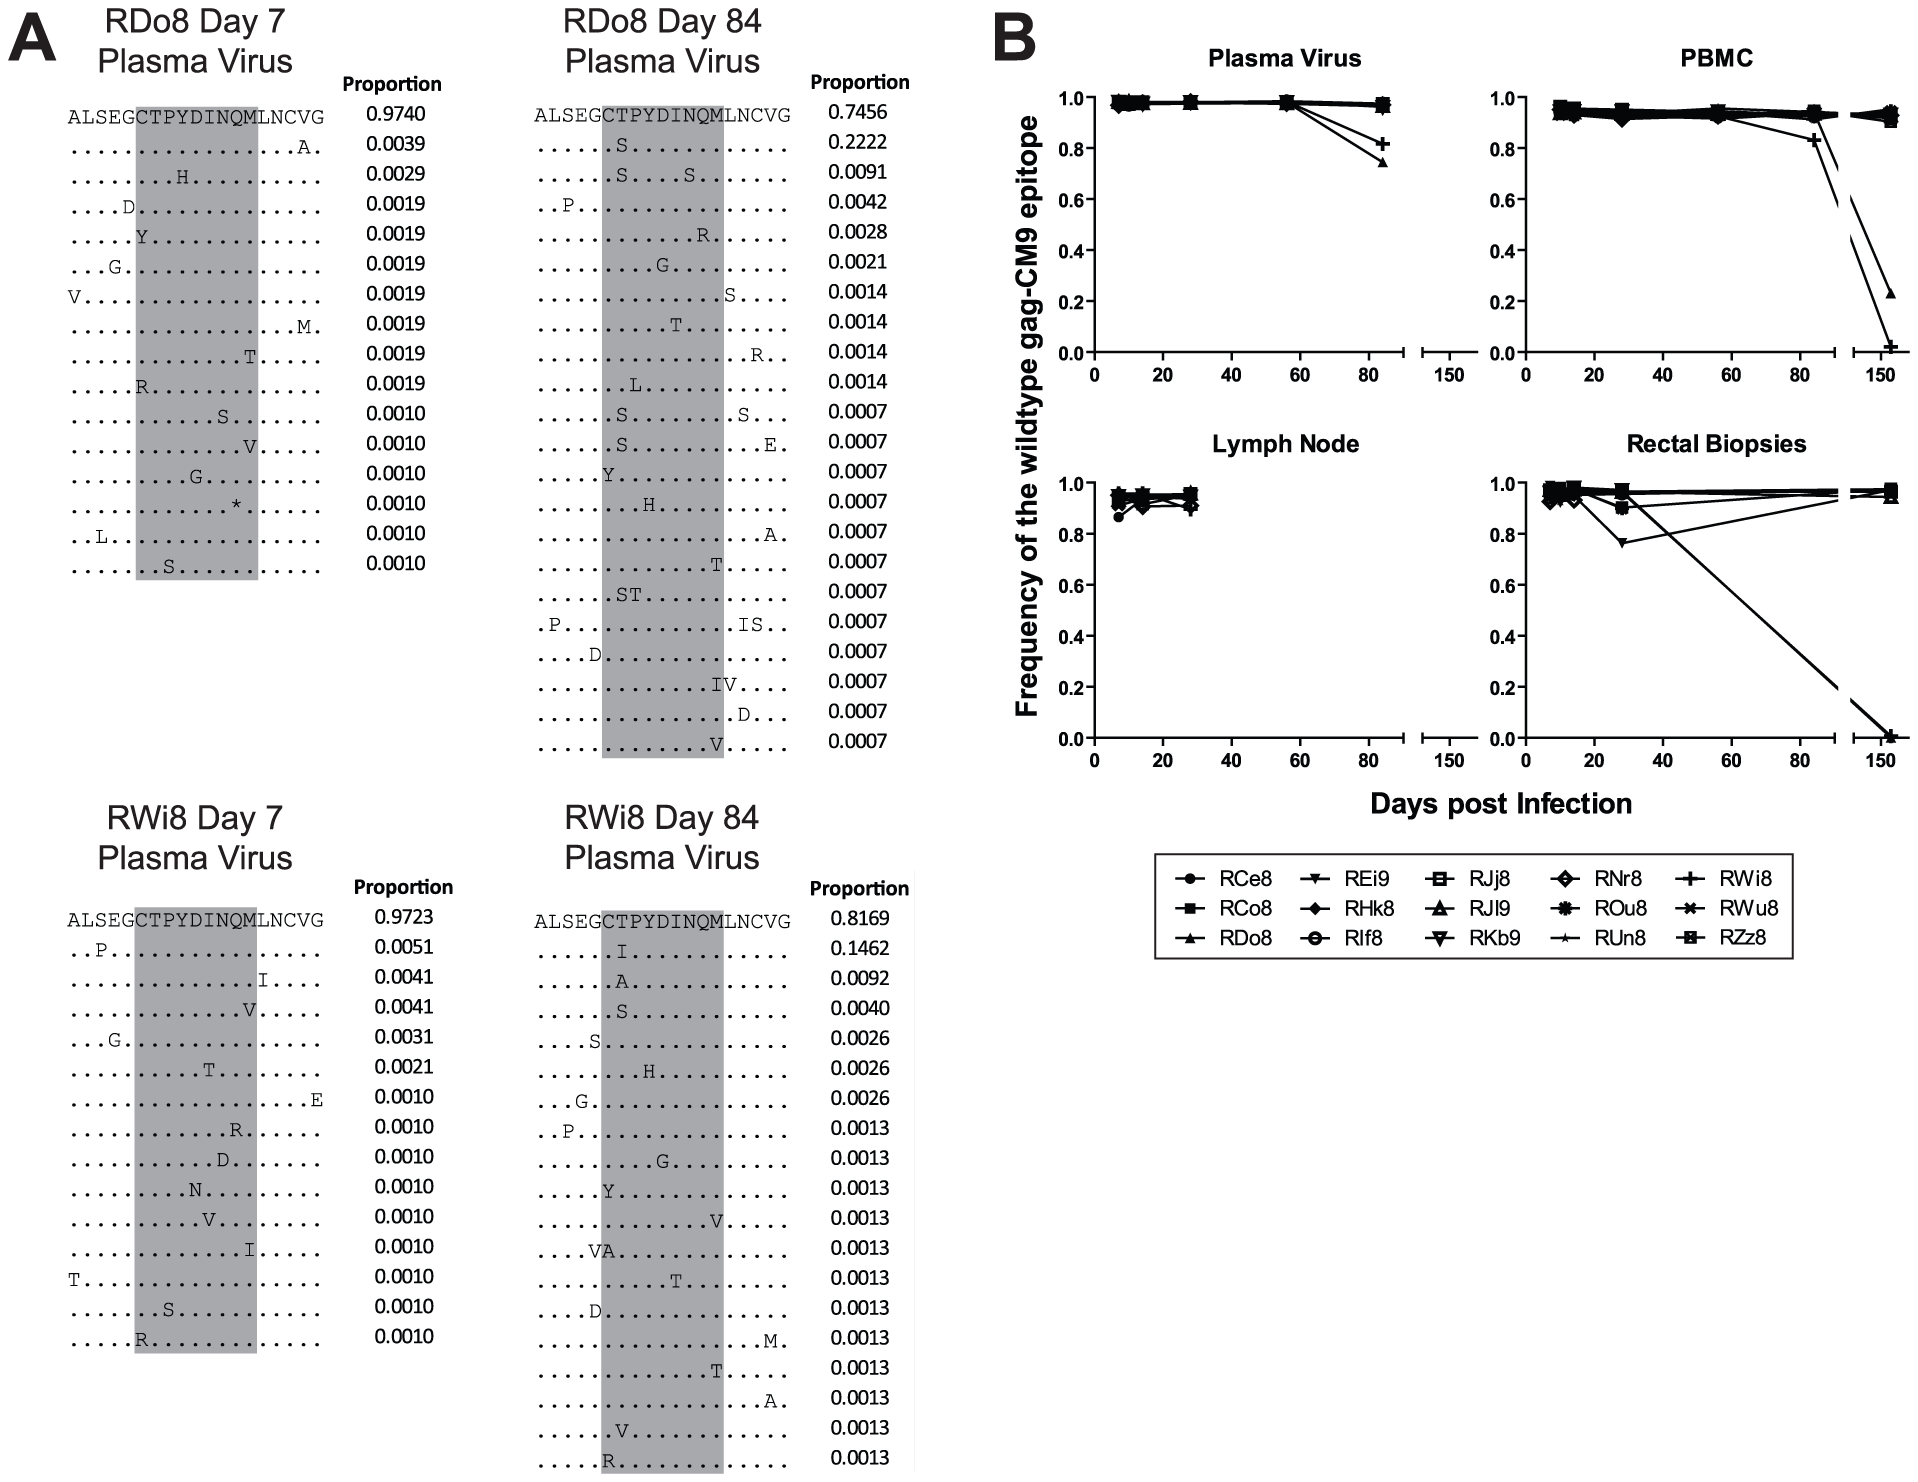 The gag-CM9 MamuA*01-restricted SIVmac239 CD8 T cell epitope escaped via a mutation of a single anchor residue that was observed late during the chronic phase of infection.